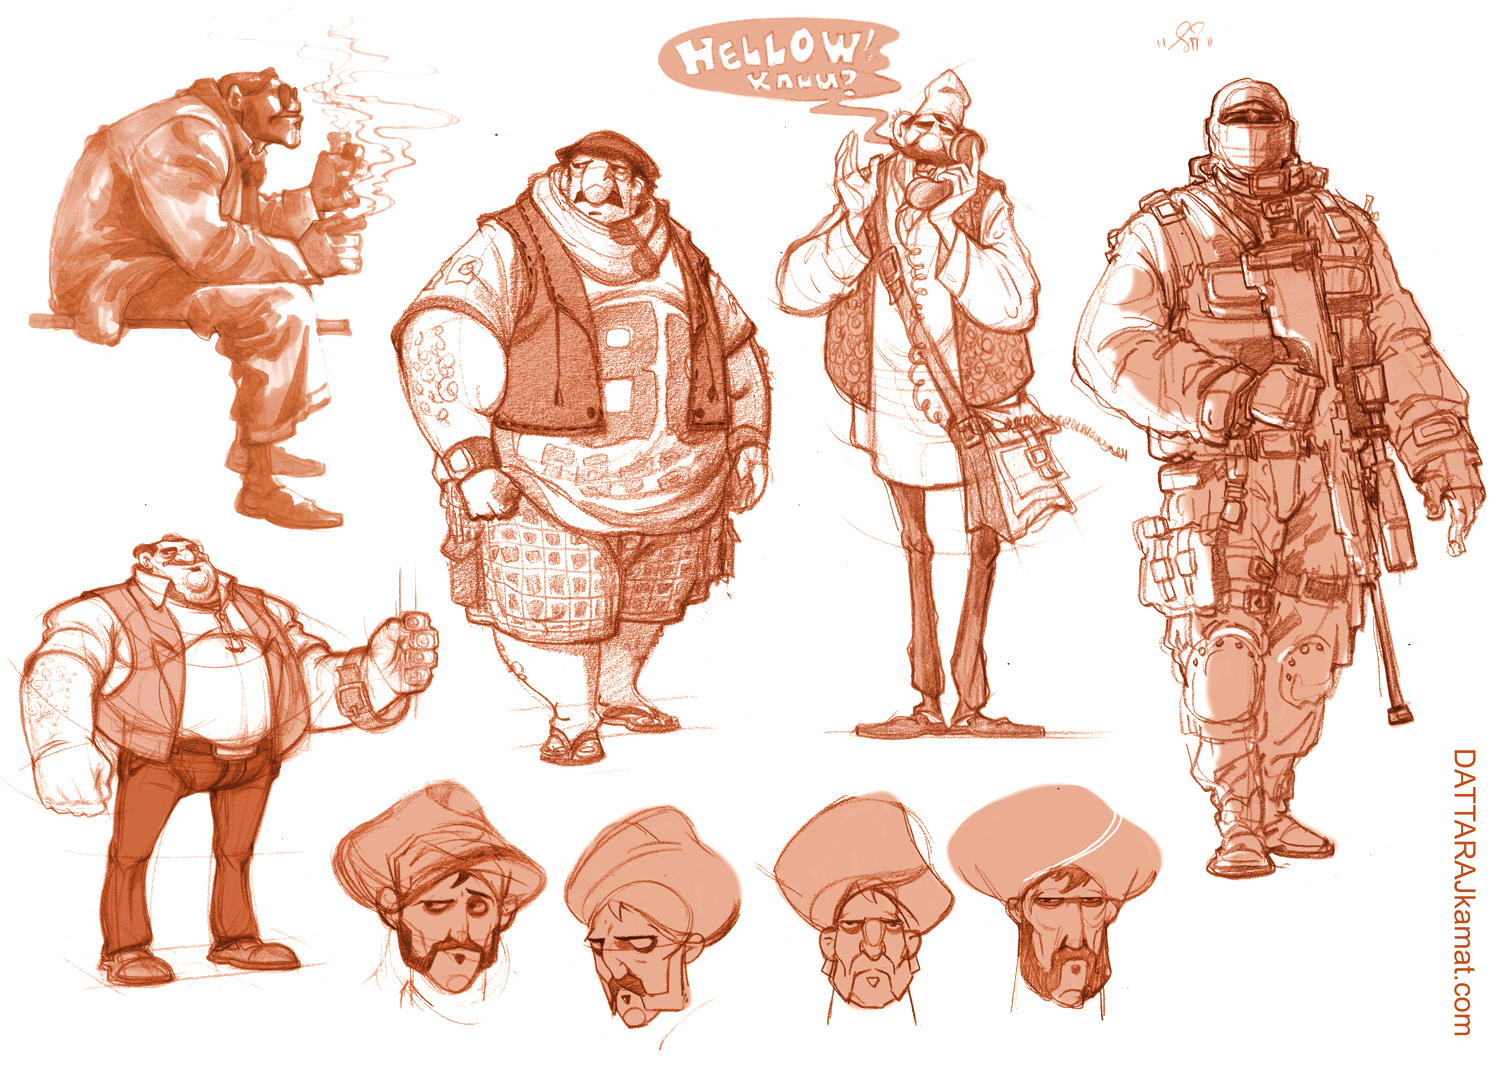 Character Design Body : Dattaraj kamat animation art character designs